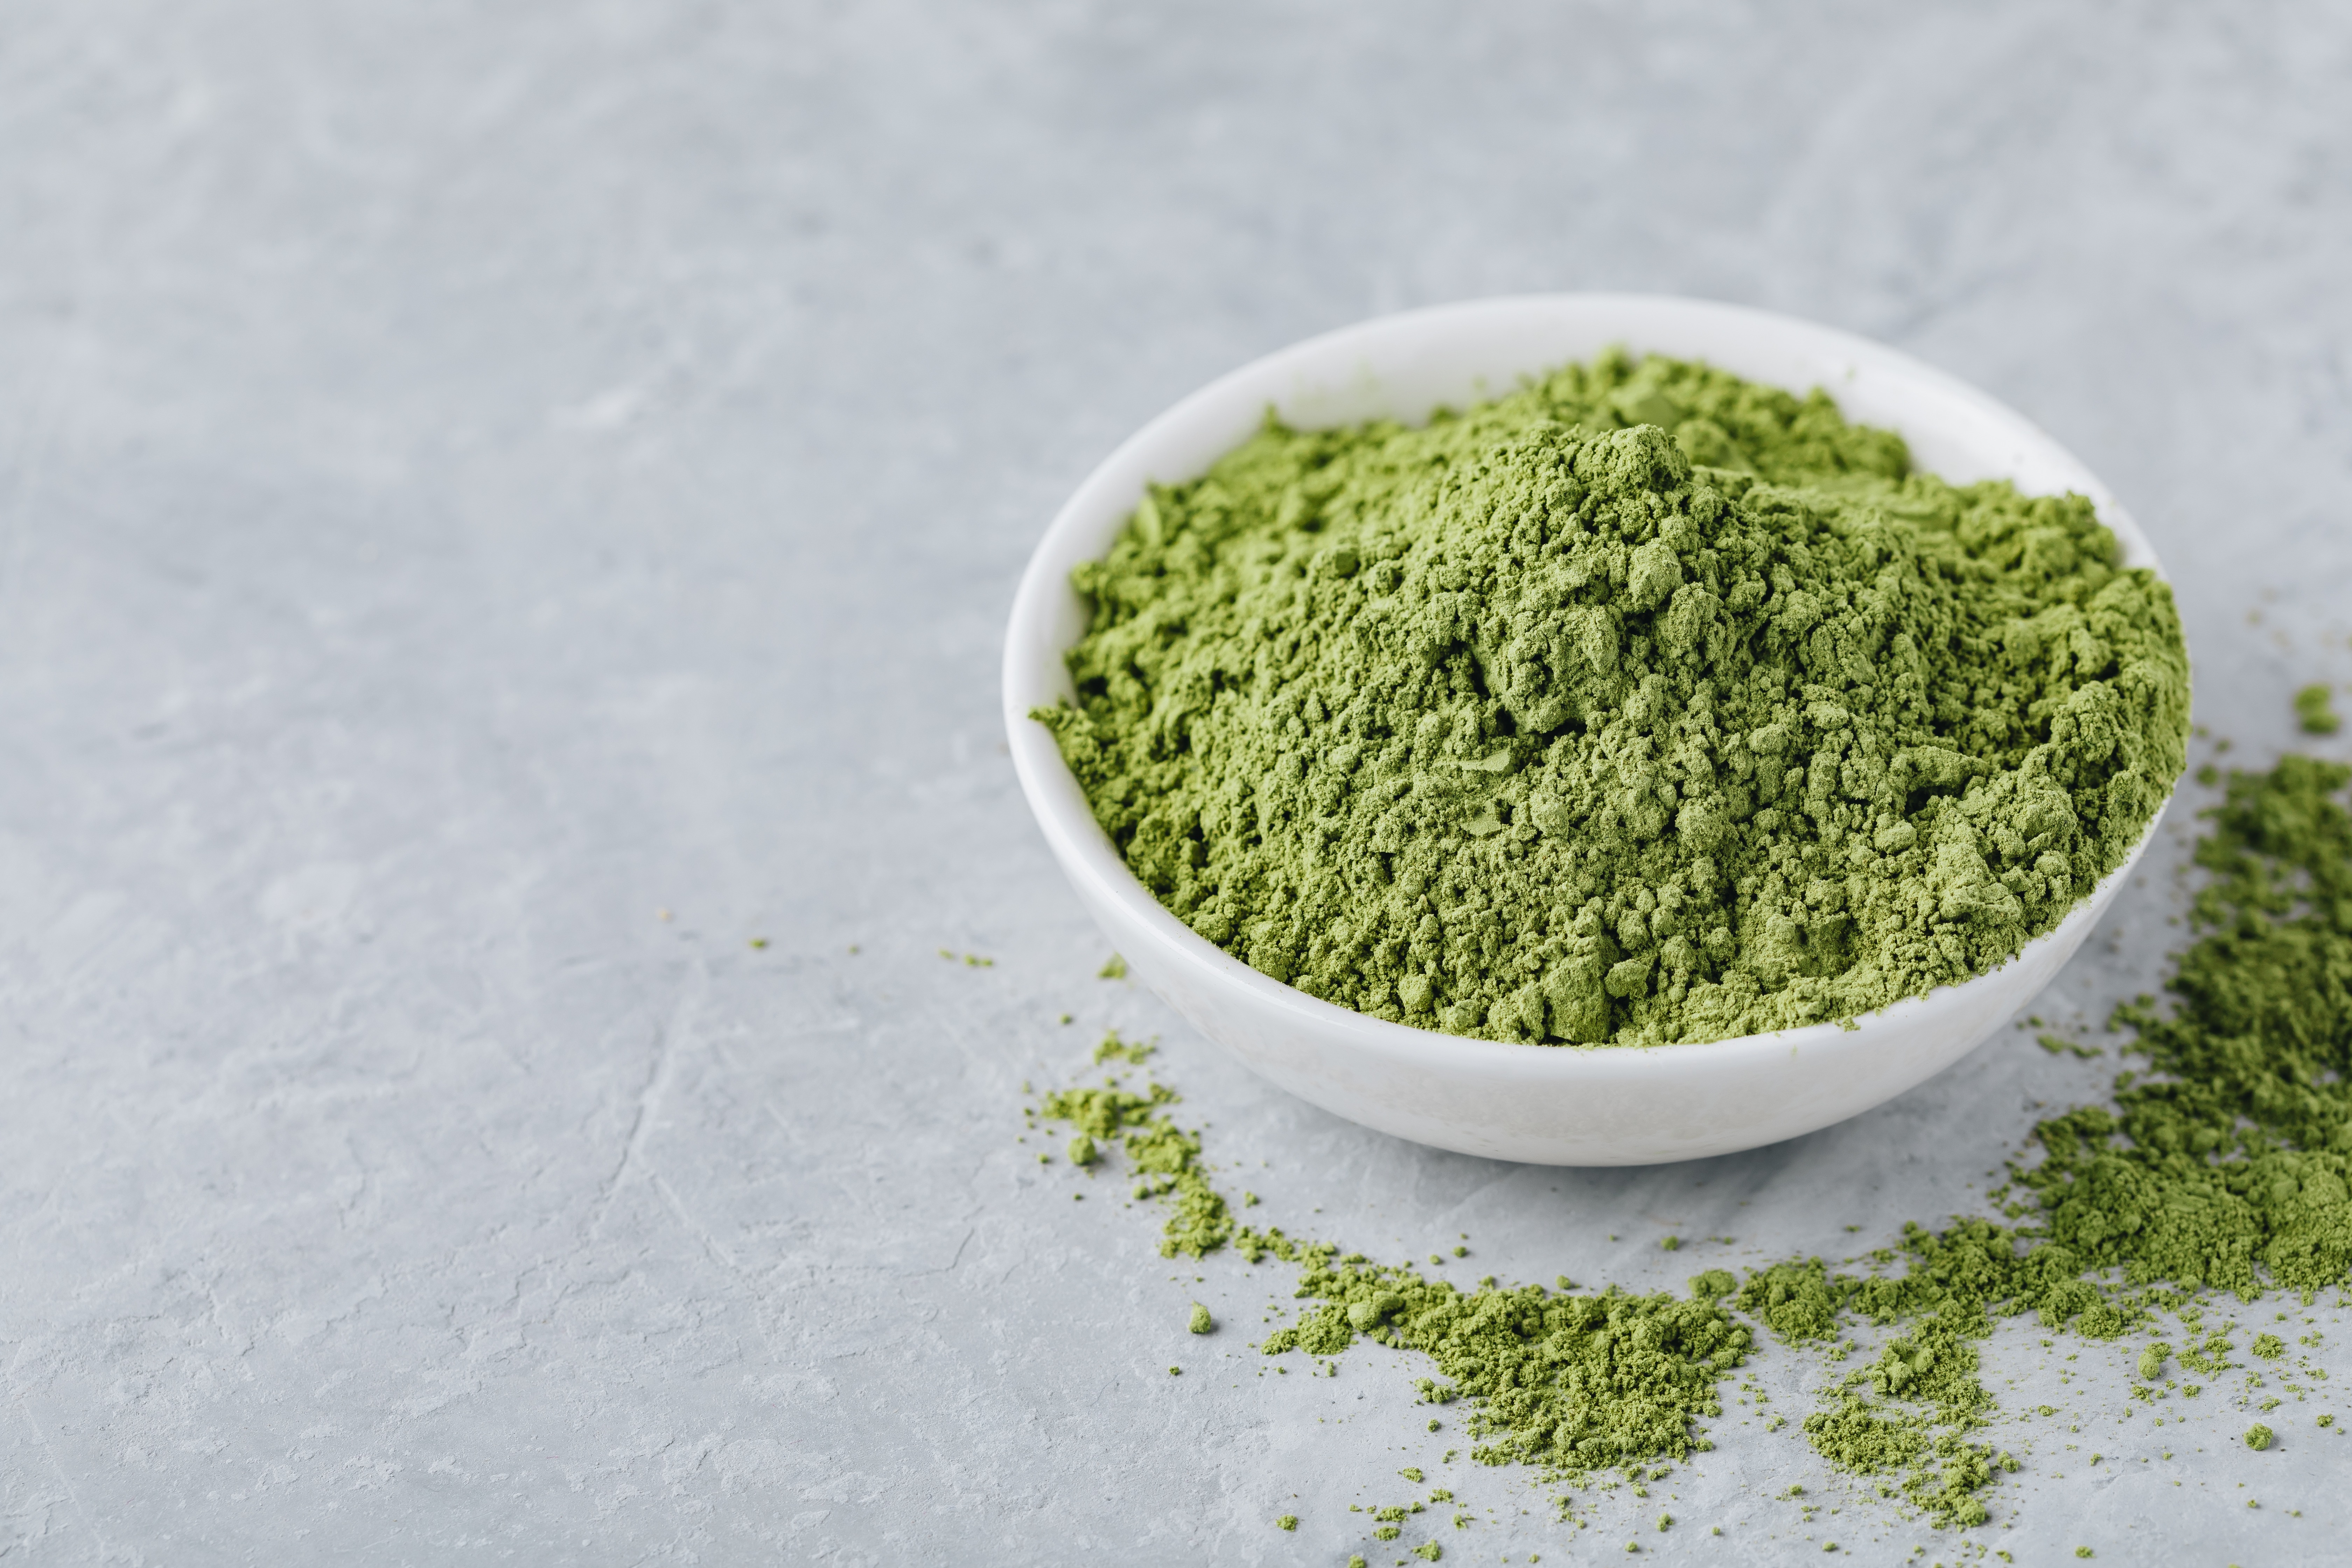 What Are Super Greens And Why Are They So Popular